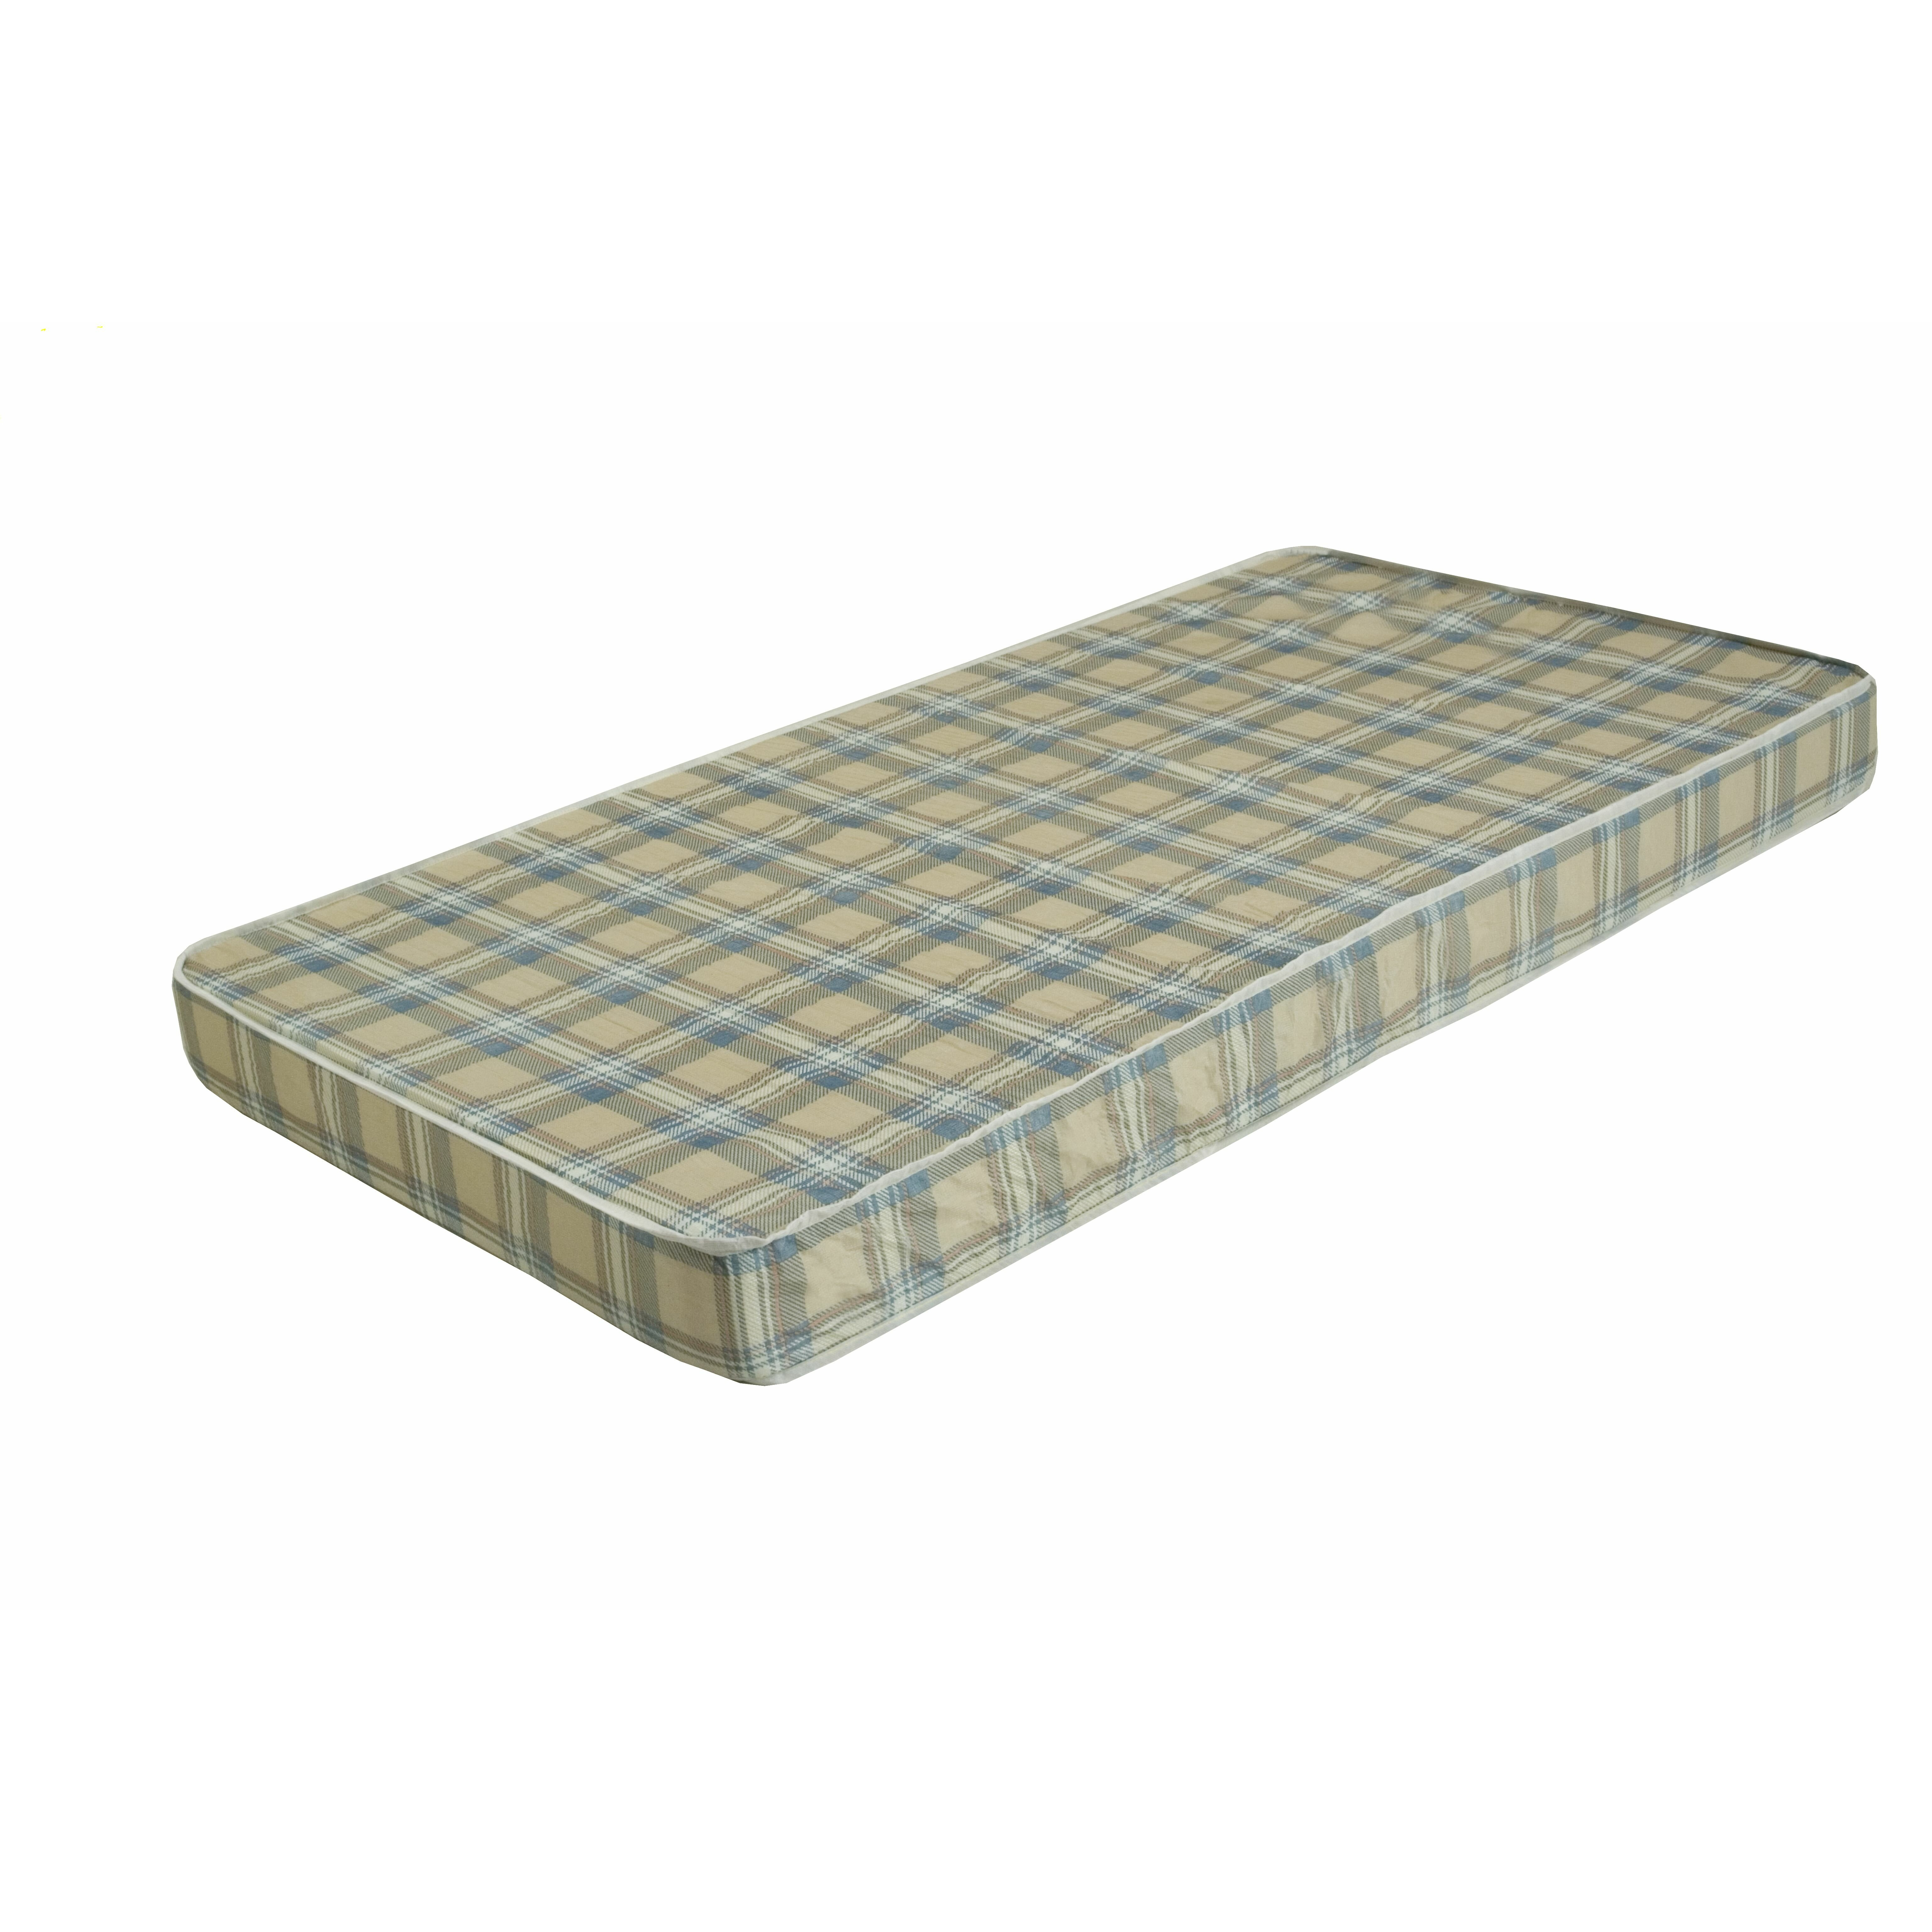 InnerSpace Luxury Products Bunk Bed Mattress & Reviews